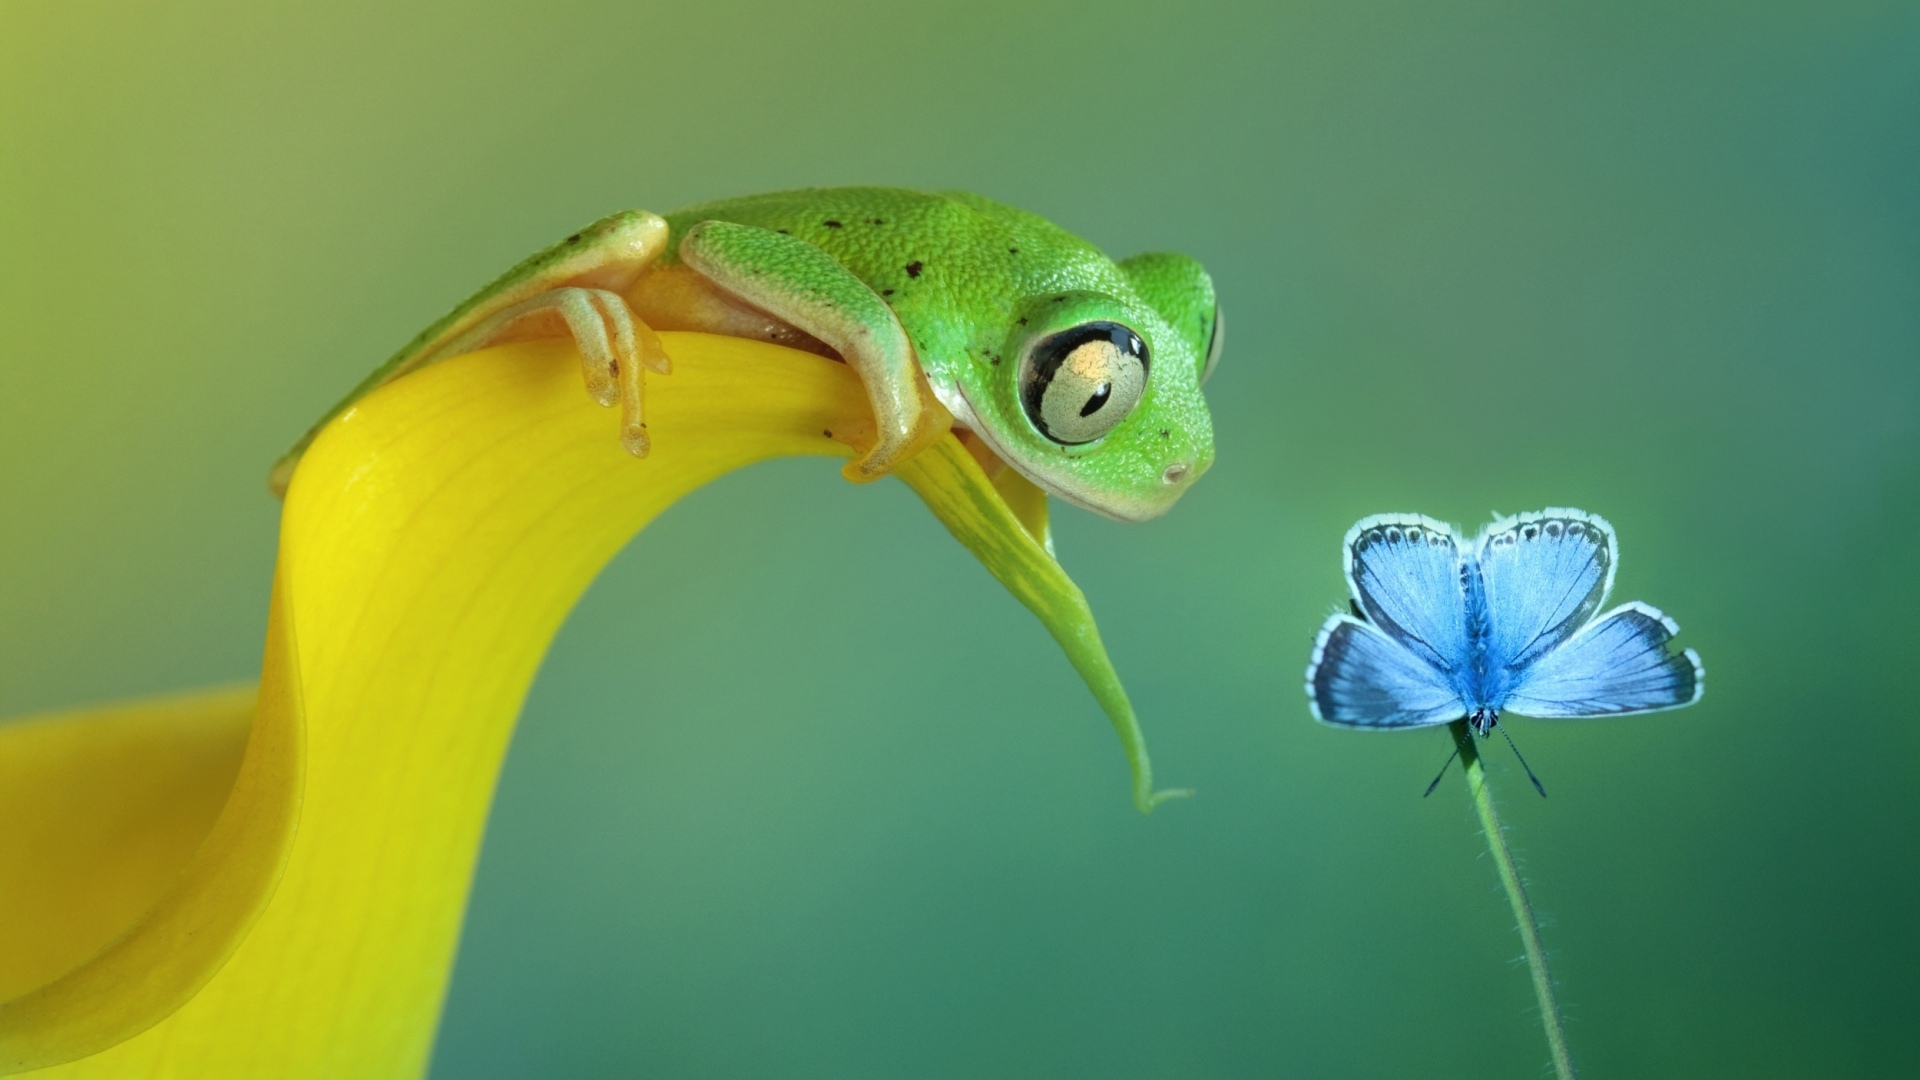 Get The Latest Curiosity Butterfly Frog News Pictures And Videos Learn All About From Wallpapers4uorg Your Wallpaper